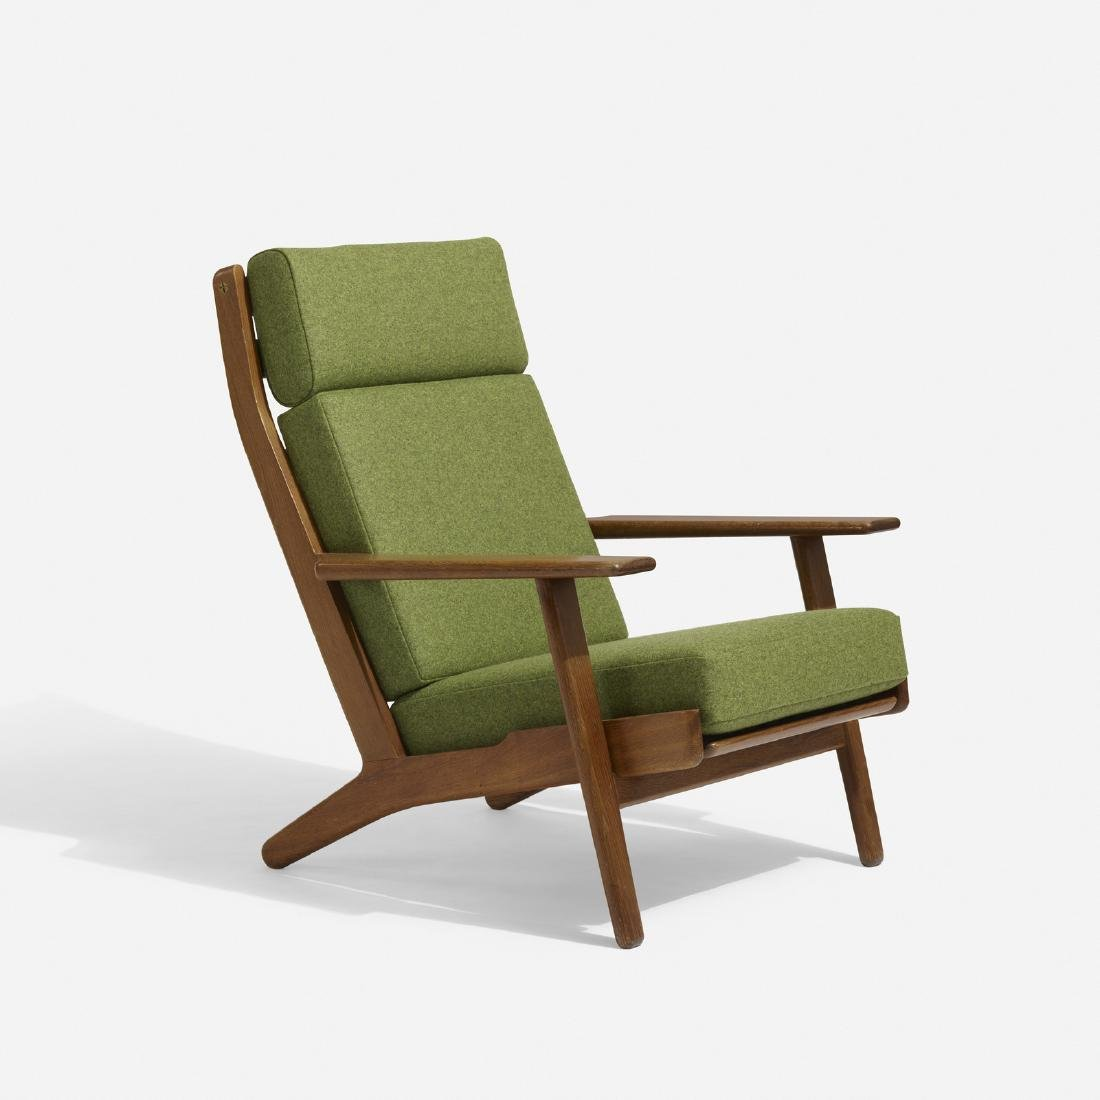 Hans J. Wegner, lounge chair, model GE290-A